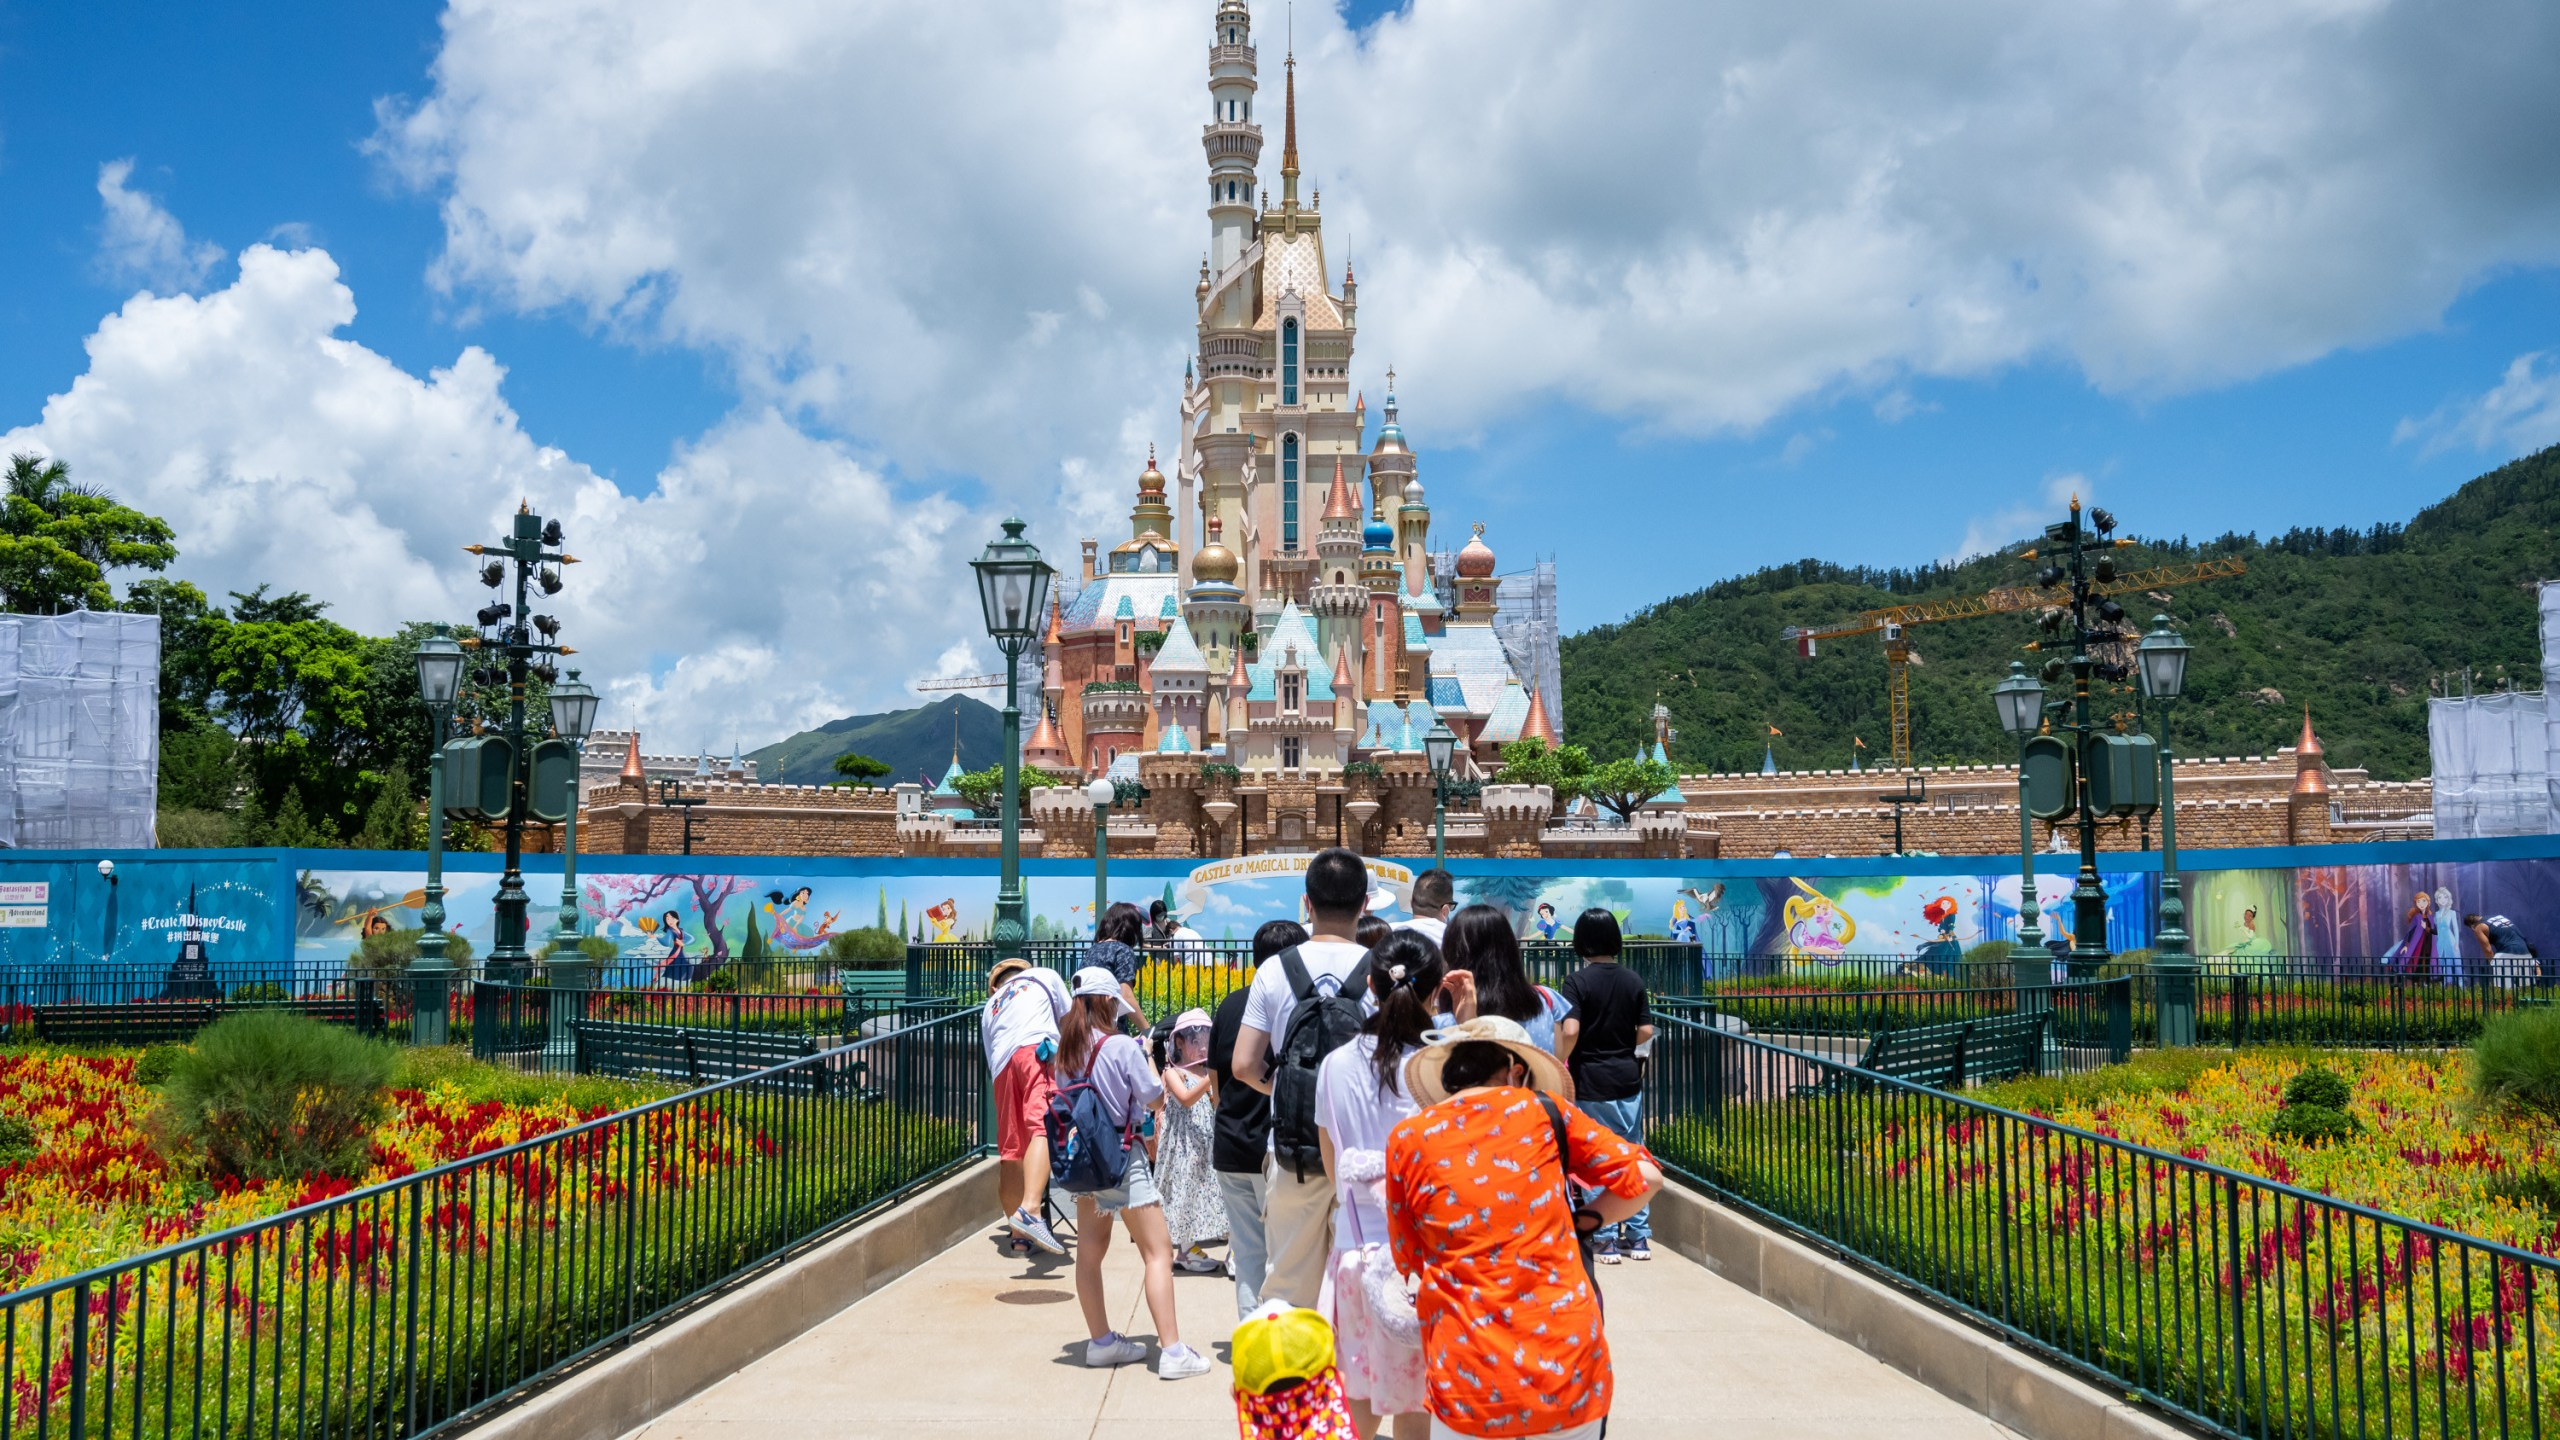 Visitors take photos of the Castle of Magical Dreams at Hong Kong Disneyland on June 18, 2020. (Billy H.C. Kwok/Getty Images)